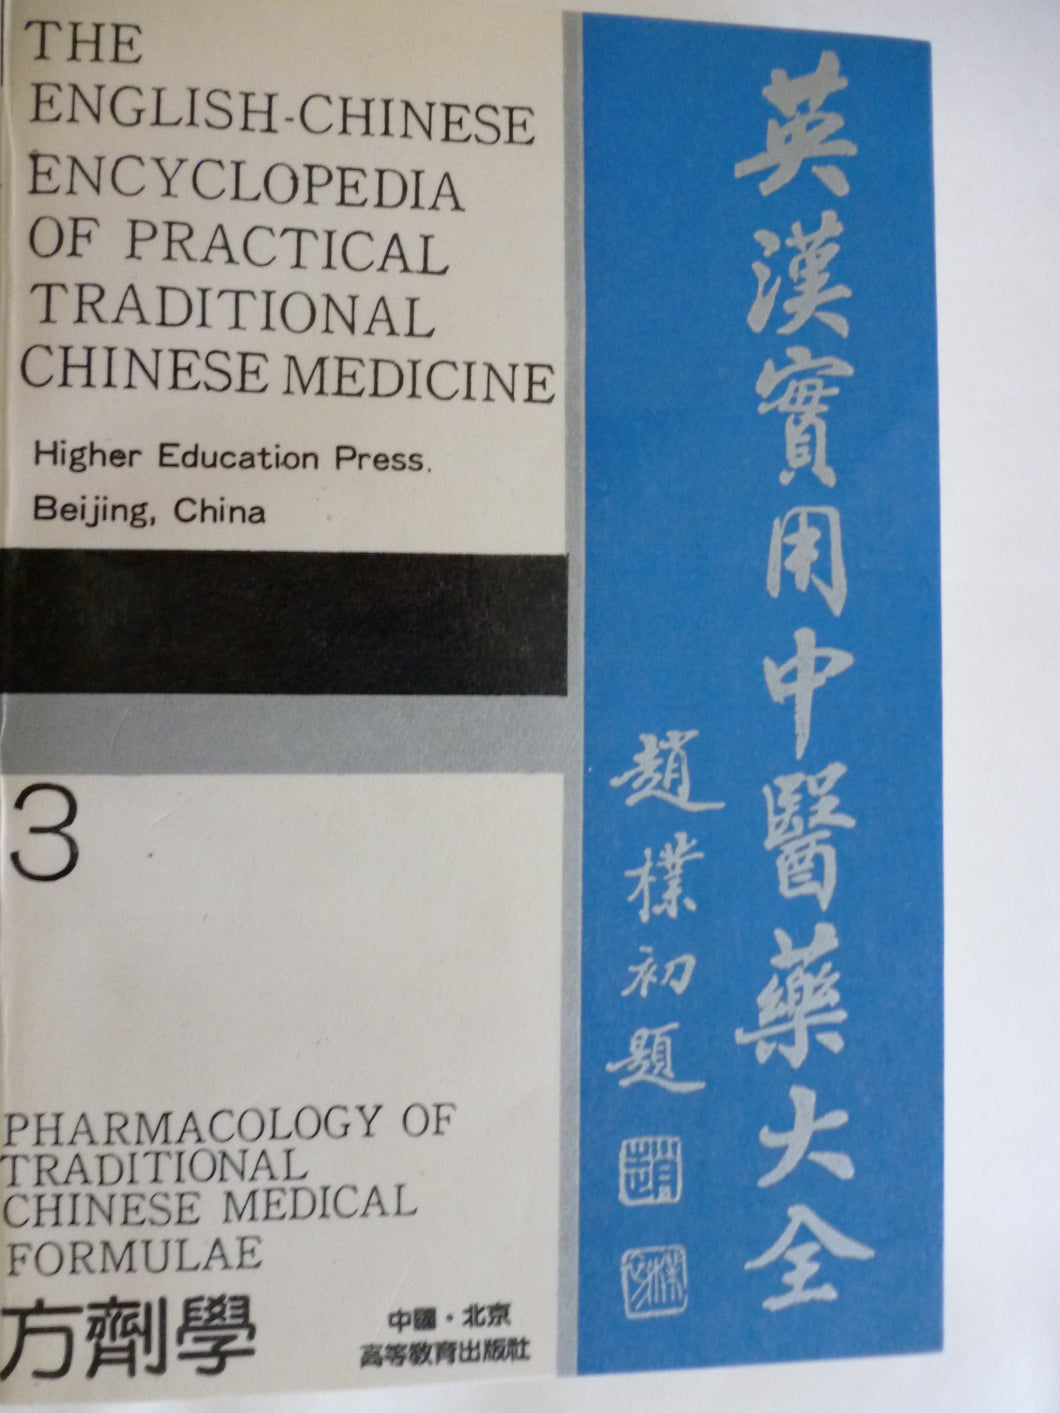 The English-Chinese Encyclopedia of Practical Traditional Chinese Medicine: 3